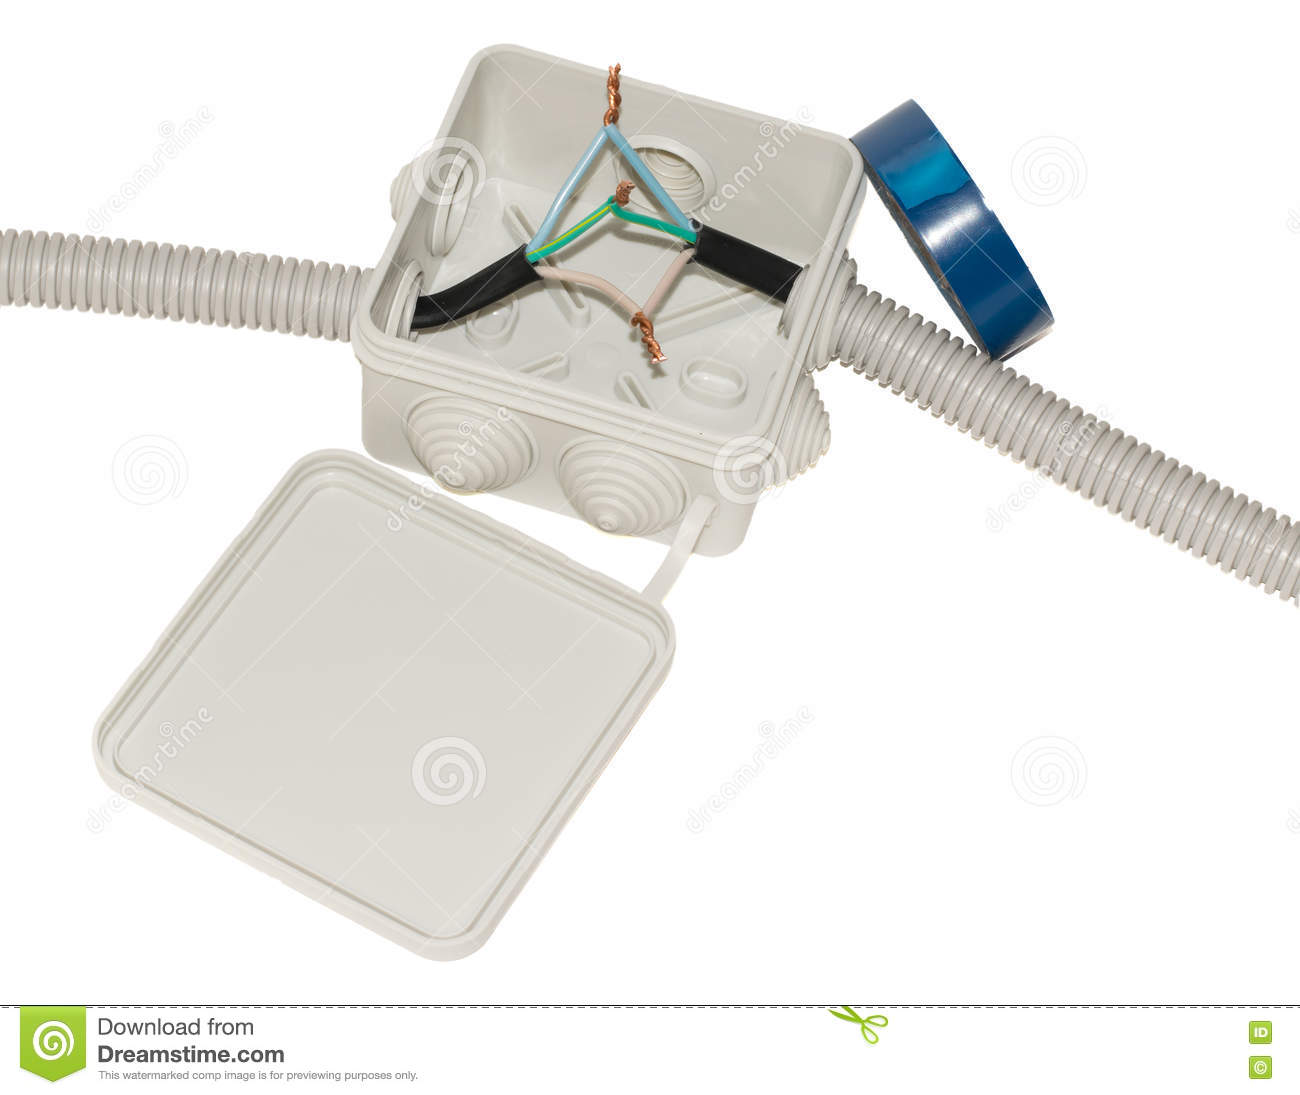 hight resolution of junction box for electrical wiring with wires